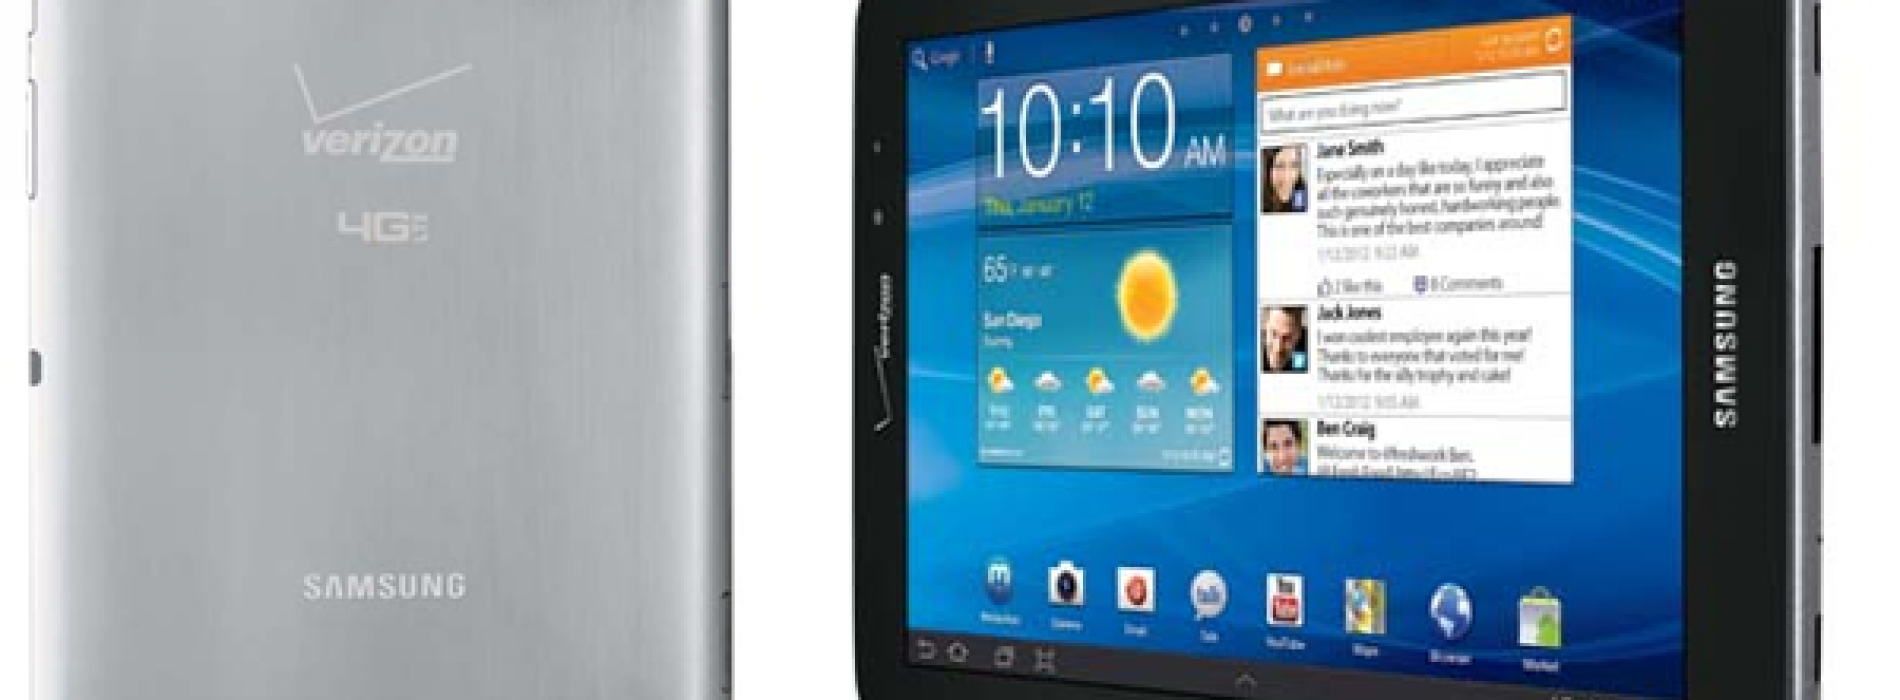 Verizon to offer Samsung Galaxy Tab 7.7 on March 1